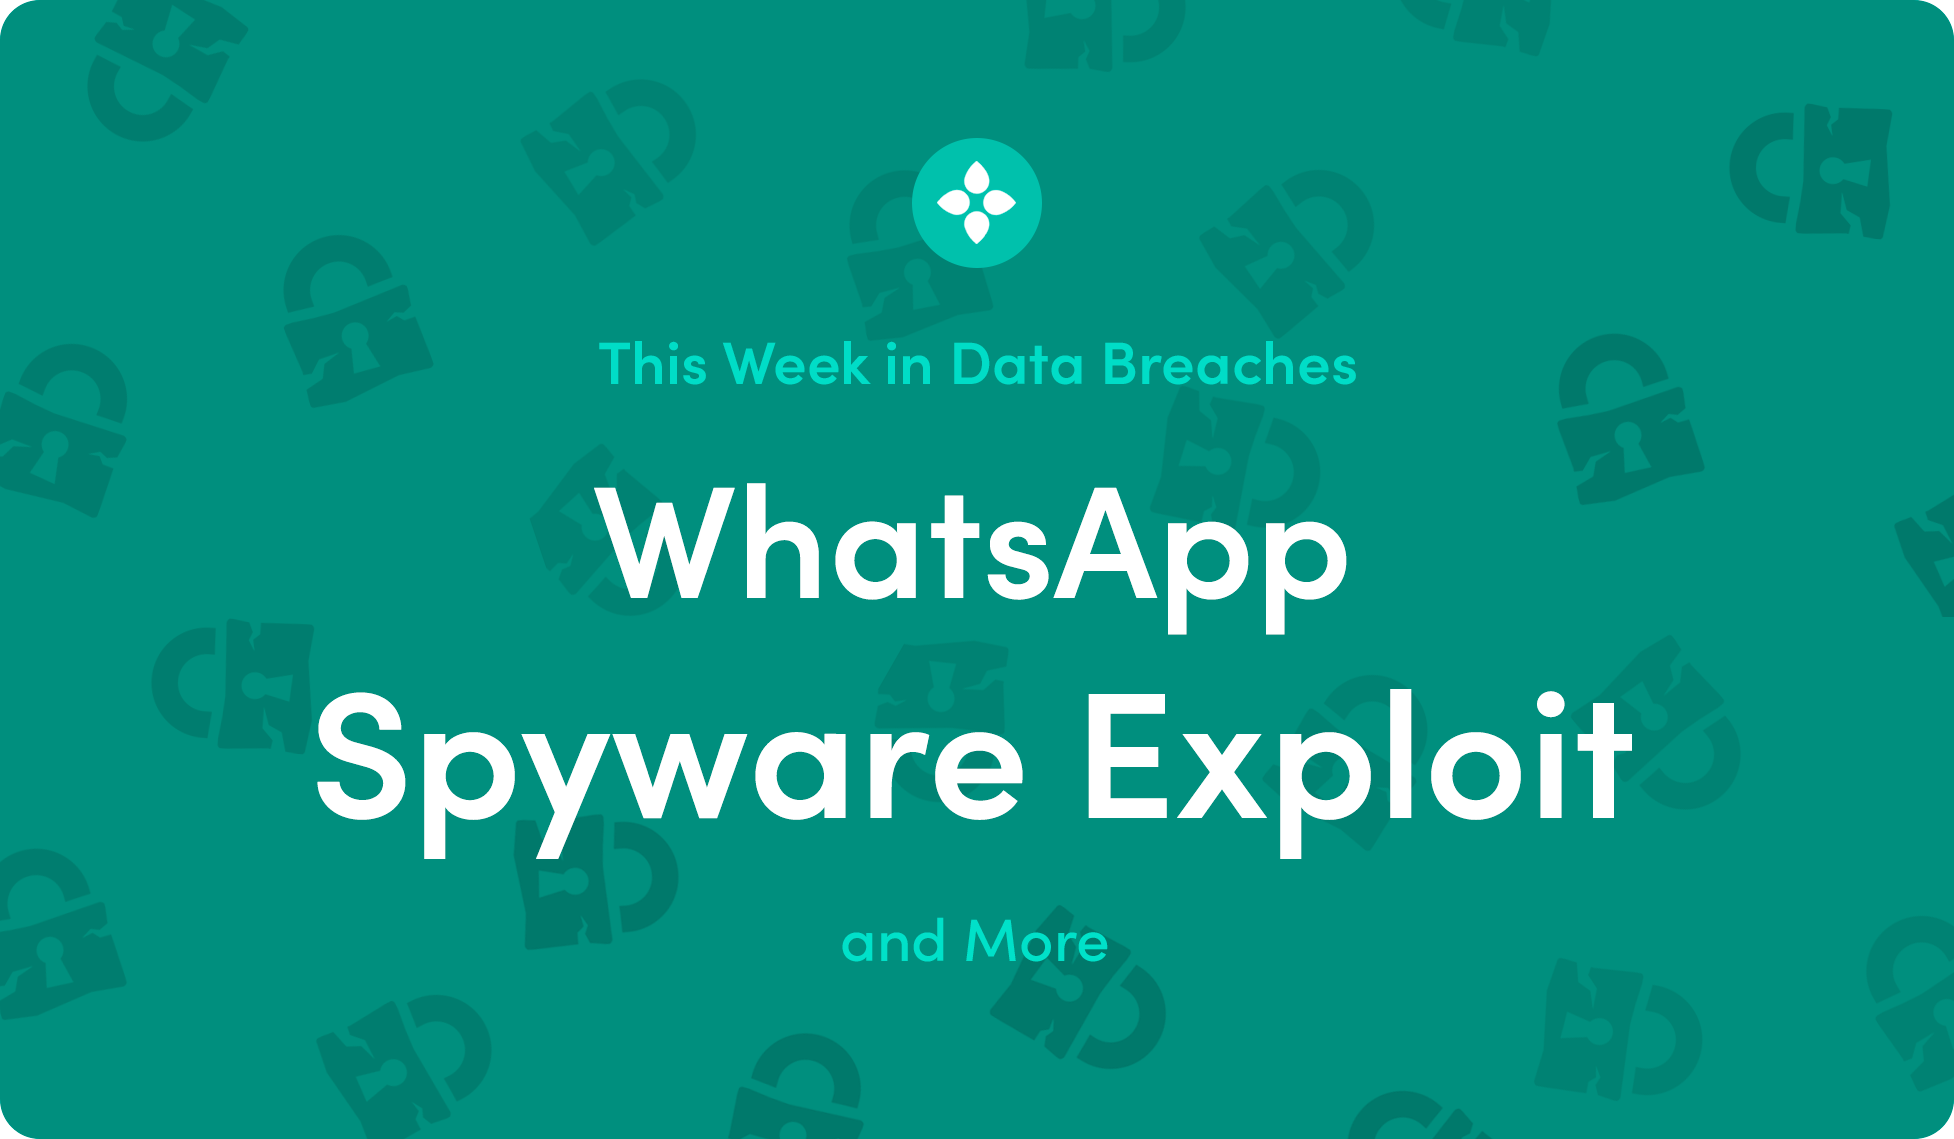 whatsapp spyware exploit